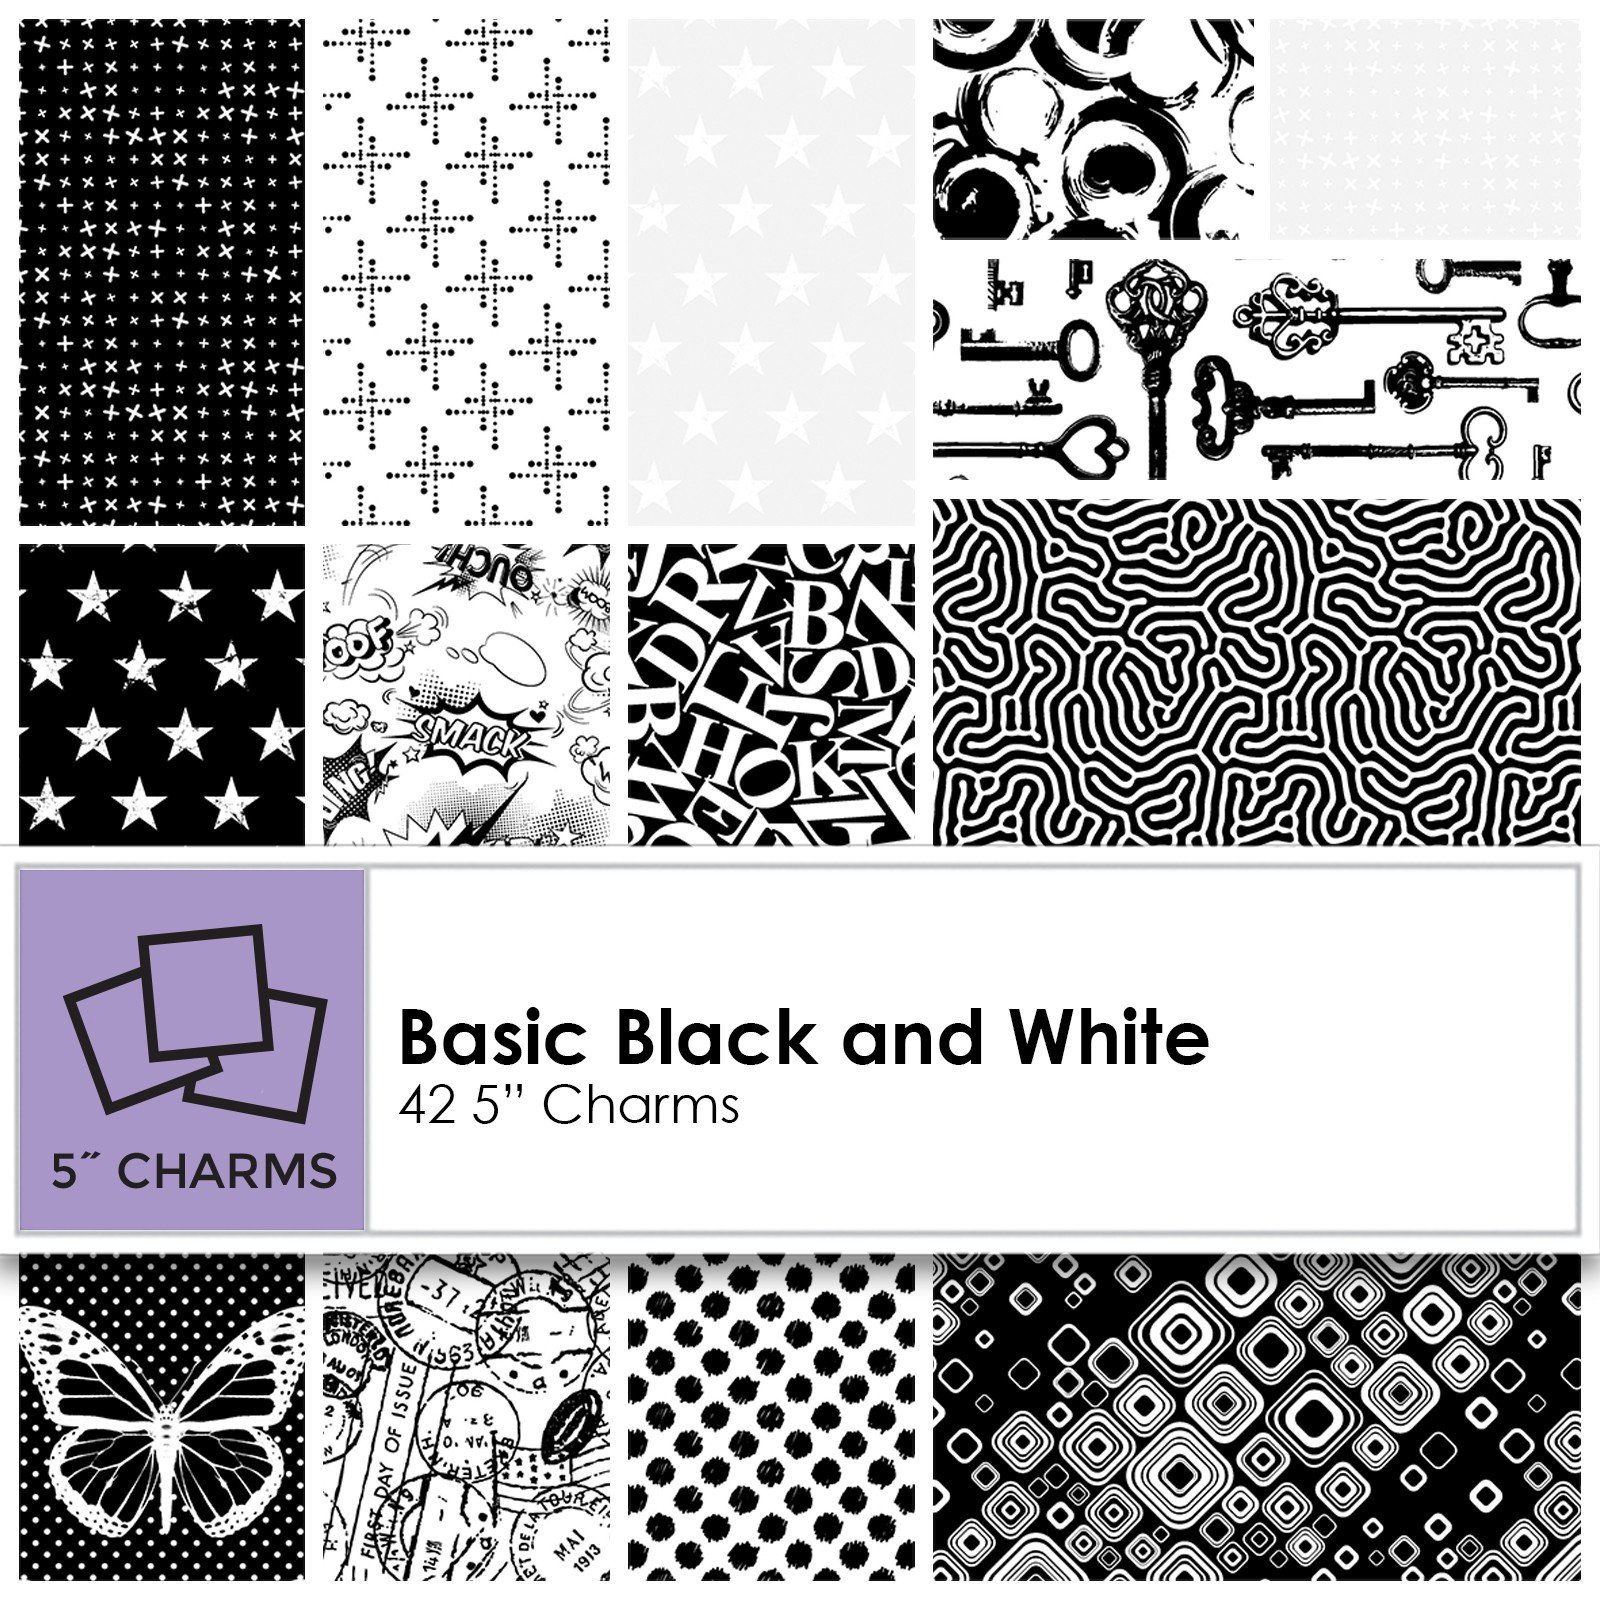 Basically Black + White Charm Pack (42 pieces)